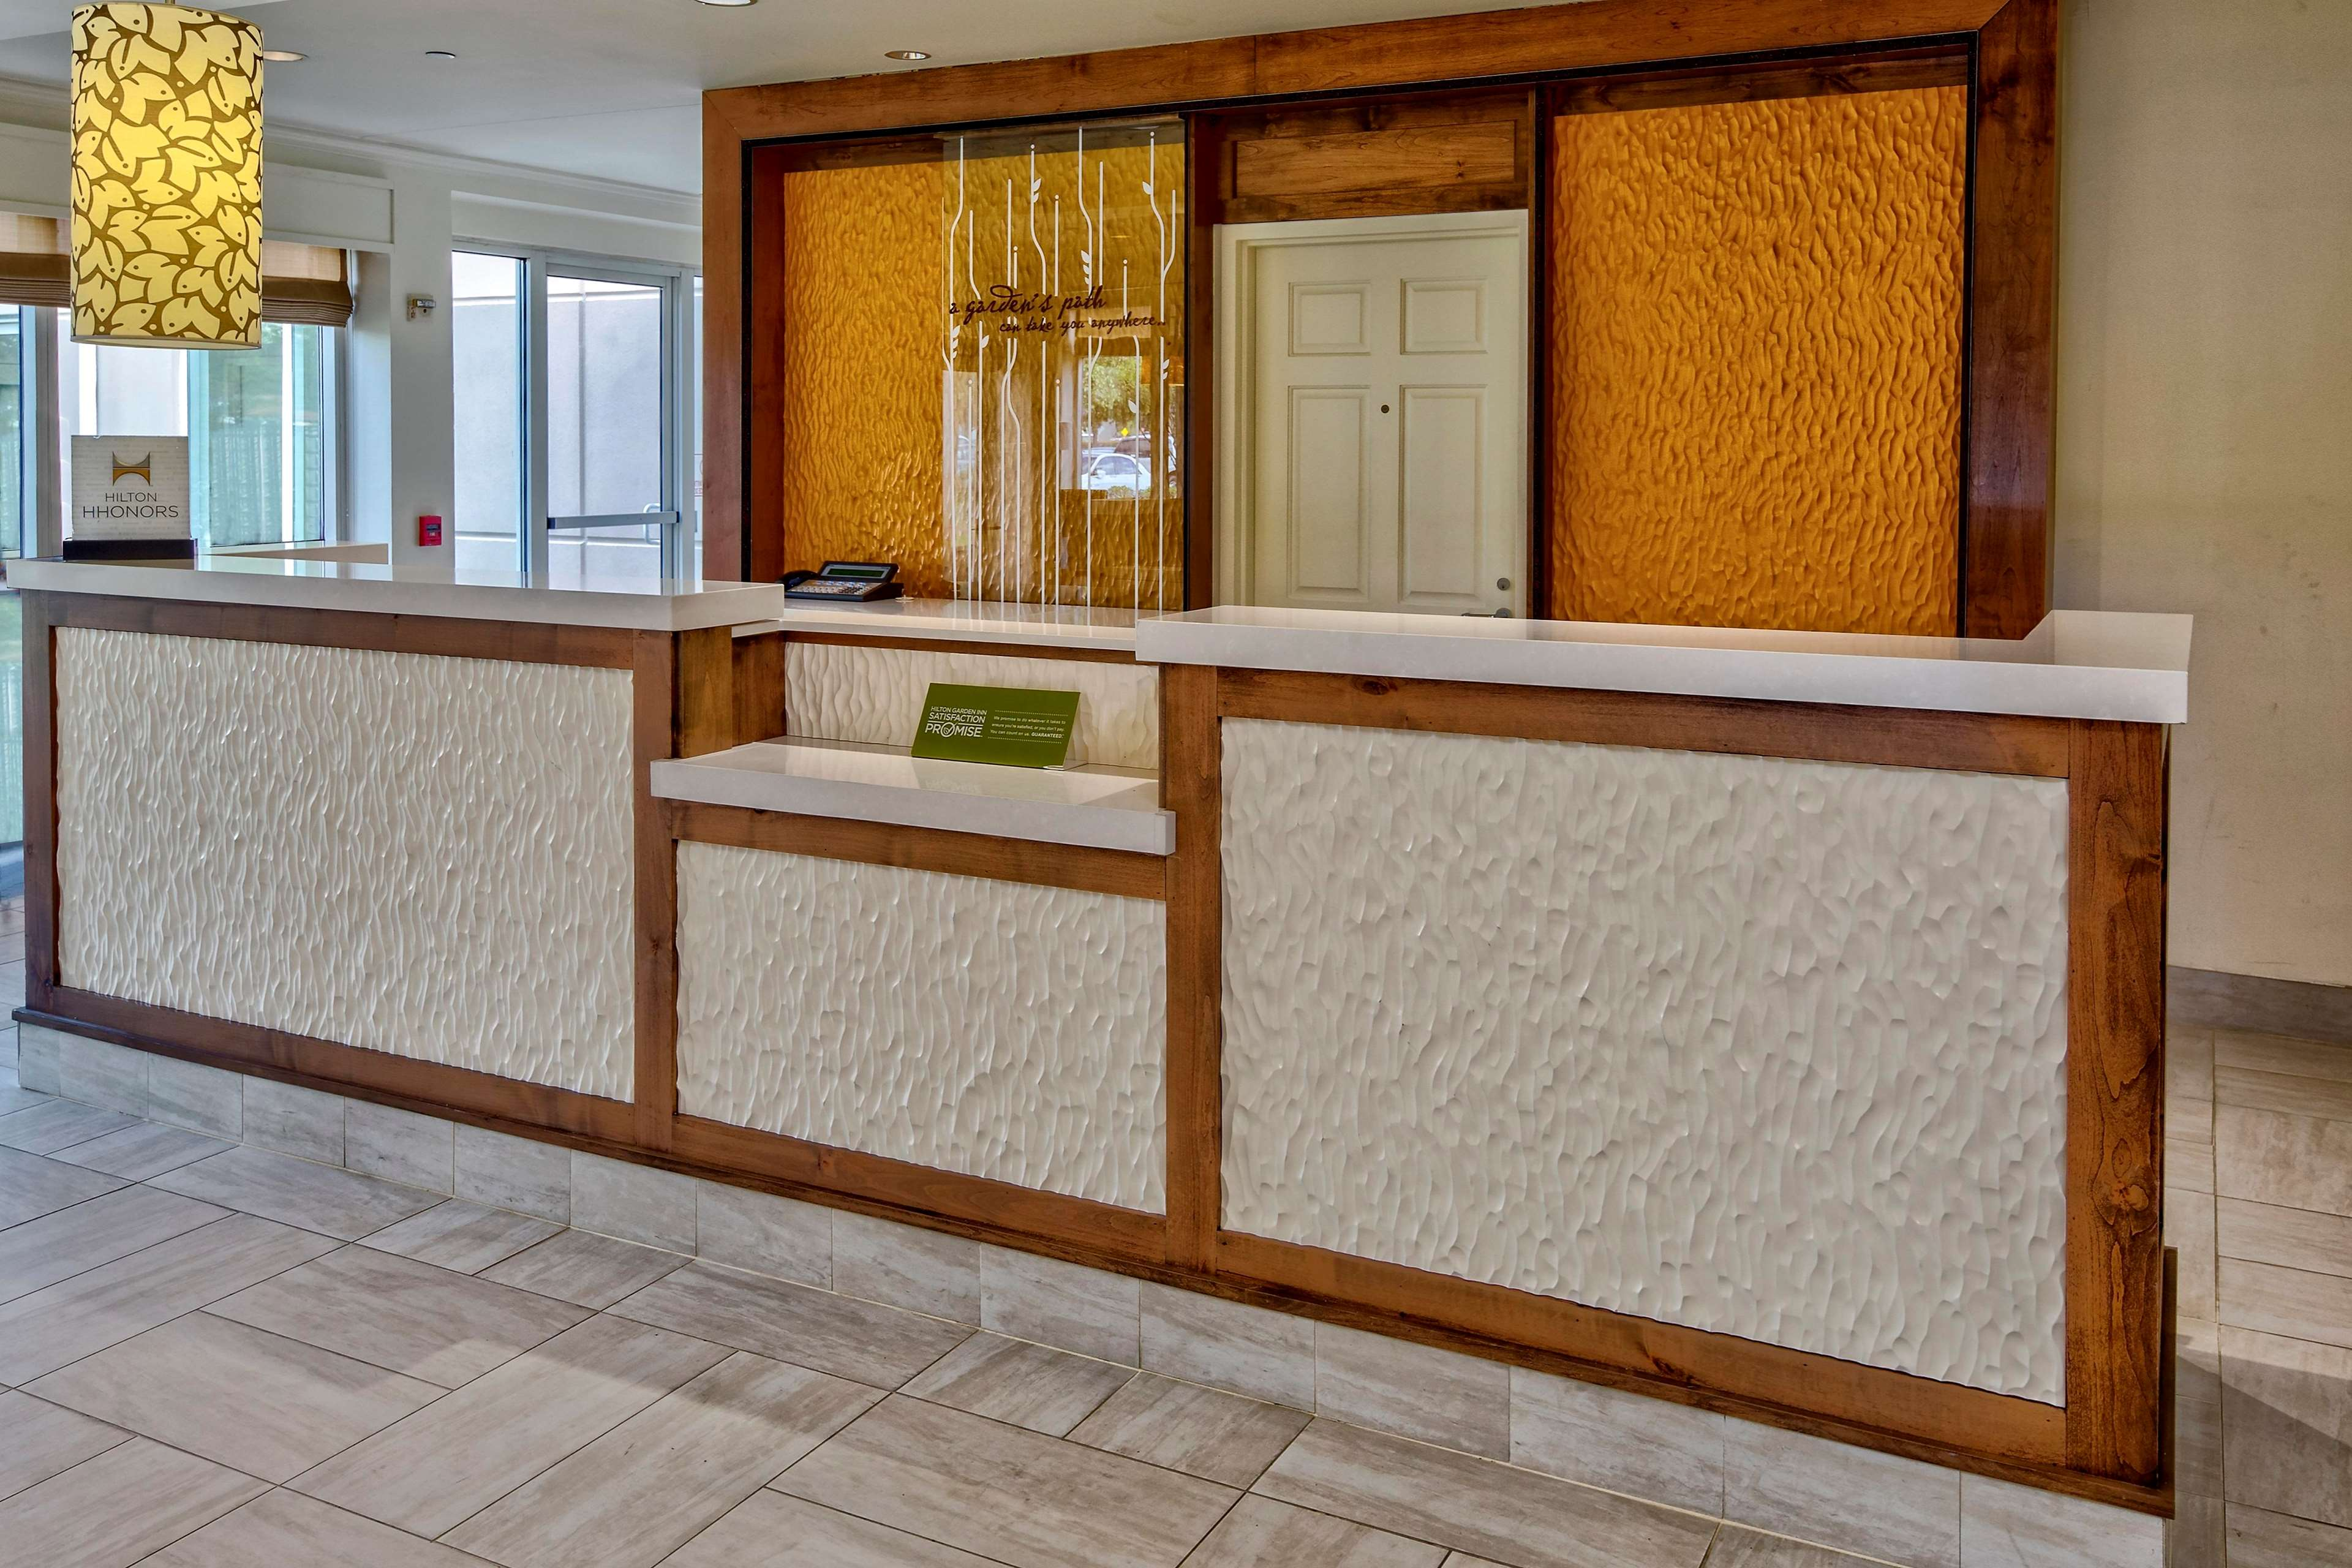 Hilton Garden Inn Houston/Bush Intercontinental Airport image 20